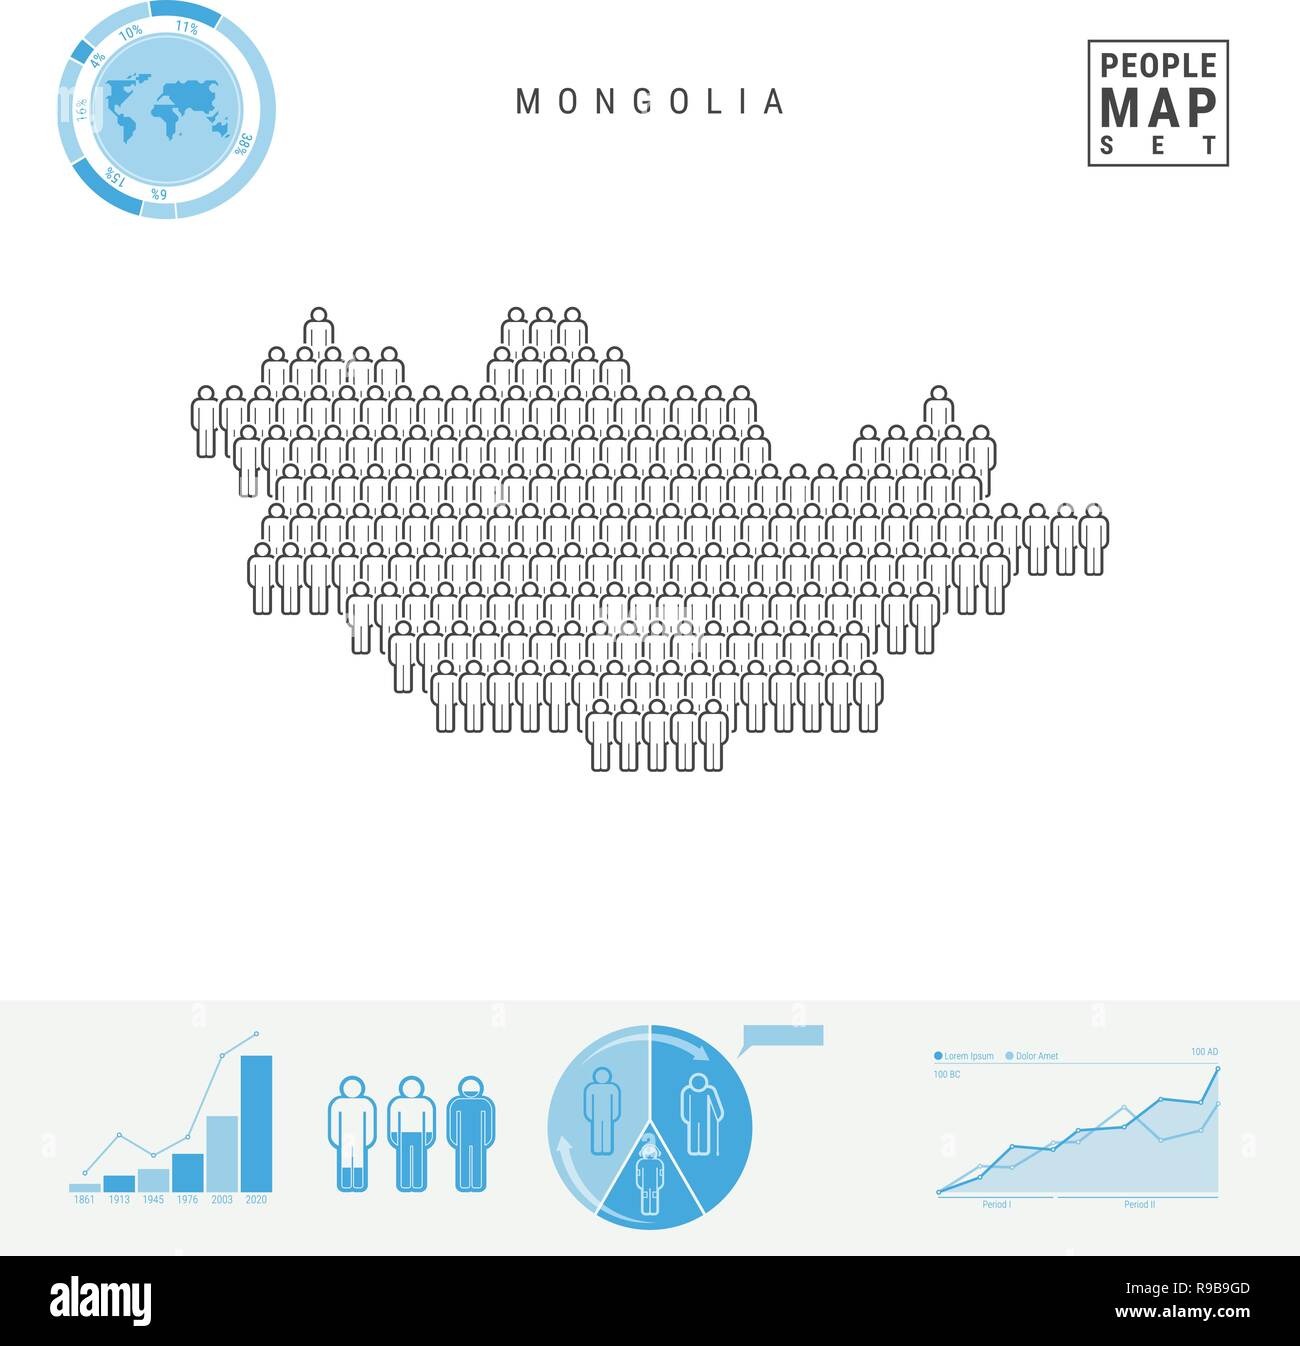 Mongolia People Icon Map. People Crowd in the Shape of a Map of Mongolia. Stylized Silhouette of Mongolia. Population Growth and Aging Infographic Ele Stock Vector